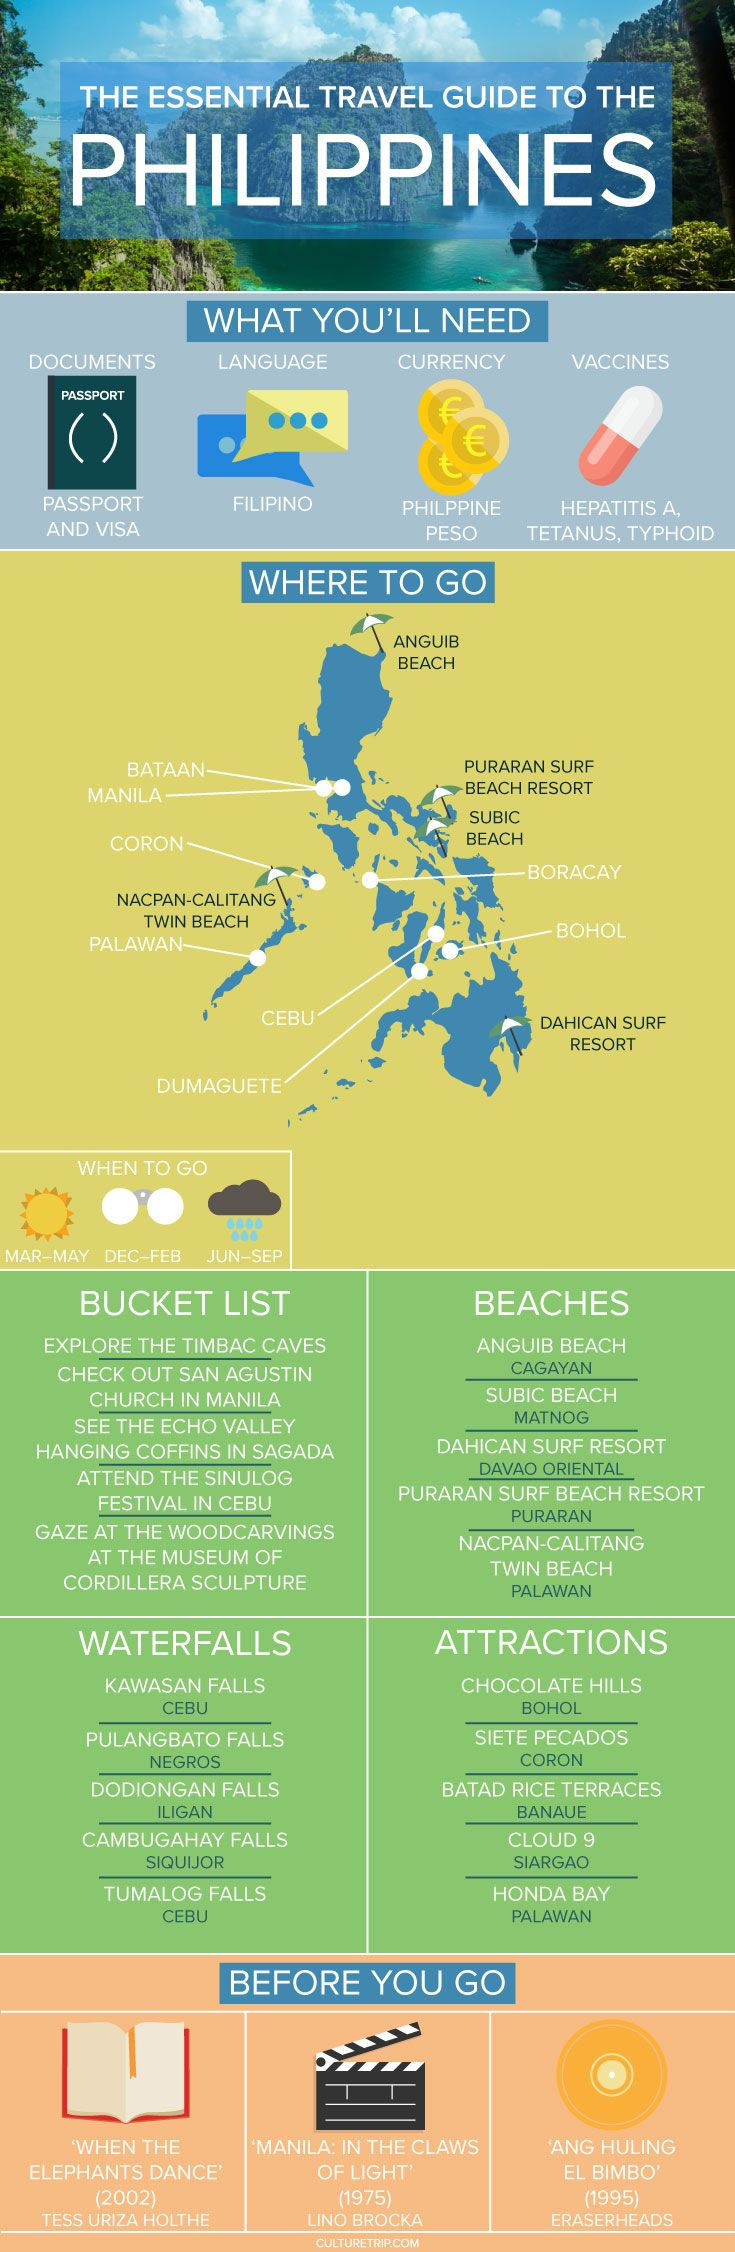 The Essential Travel Guide to the Philippines (Infographic)|Pinterest: theculturetrip